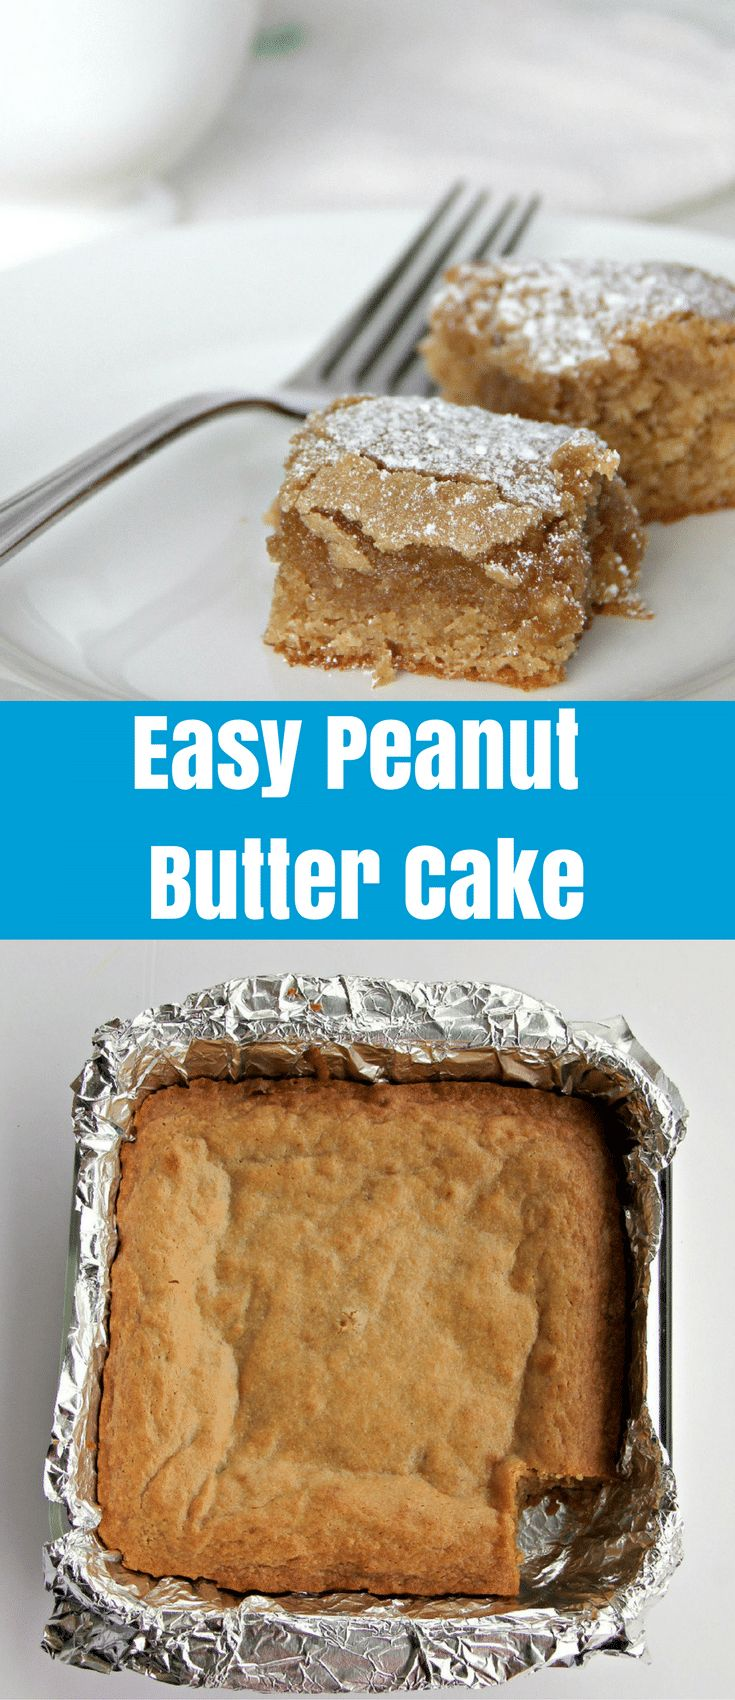 A tender, moist, easy peanut butter cake made in one bowl and ready in about forty-five minutes. This peanut butter cake is a great after school snack. via @insouthernktchn